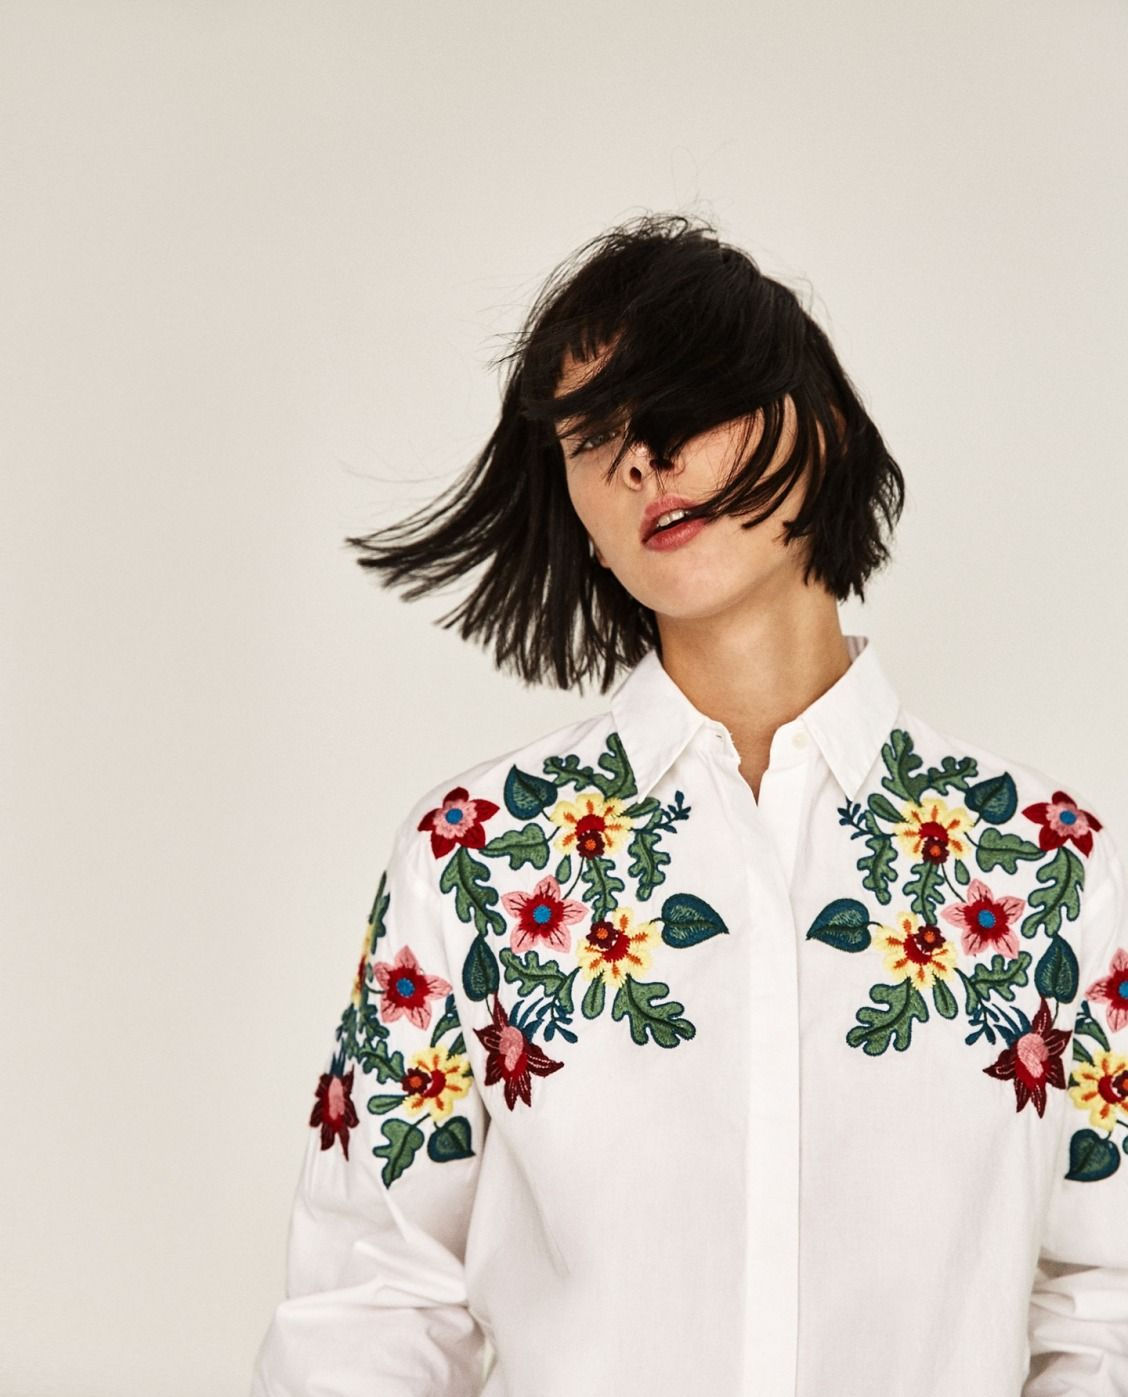 21 Pieces To Give Your 9 To 5 Wardrobe The 2017 Upgrade It Deserves Oversized Floral Shirt Embroidery Fashion Floral Shirt